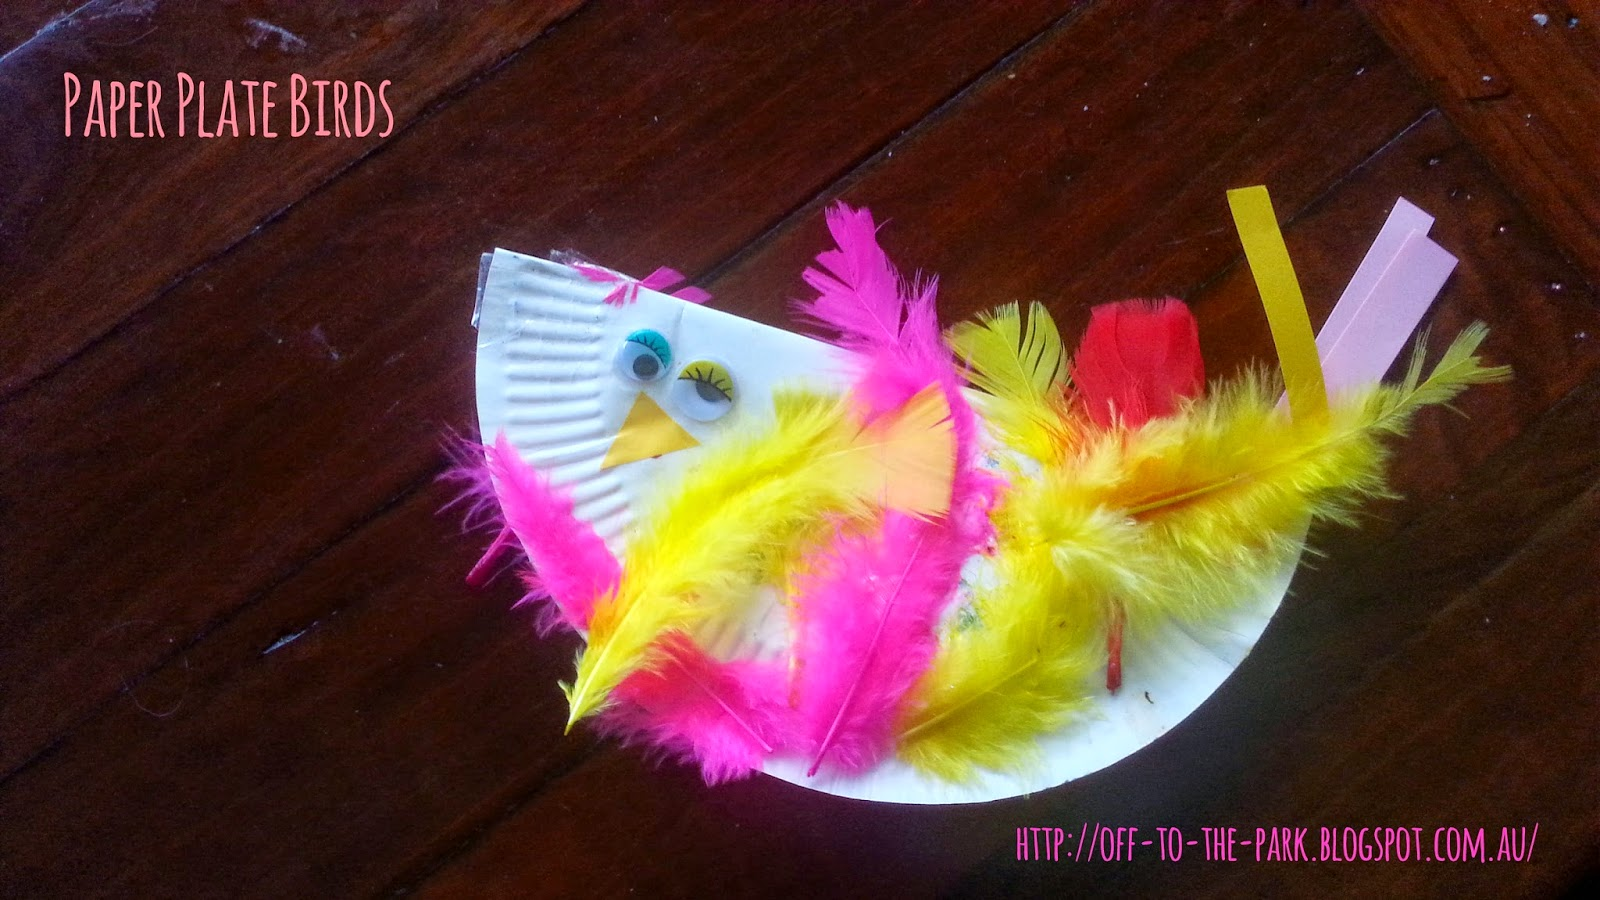 & Off to the park: Craft: Paper plate birds